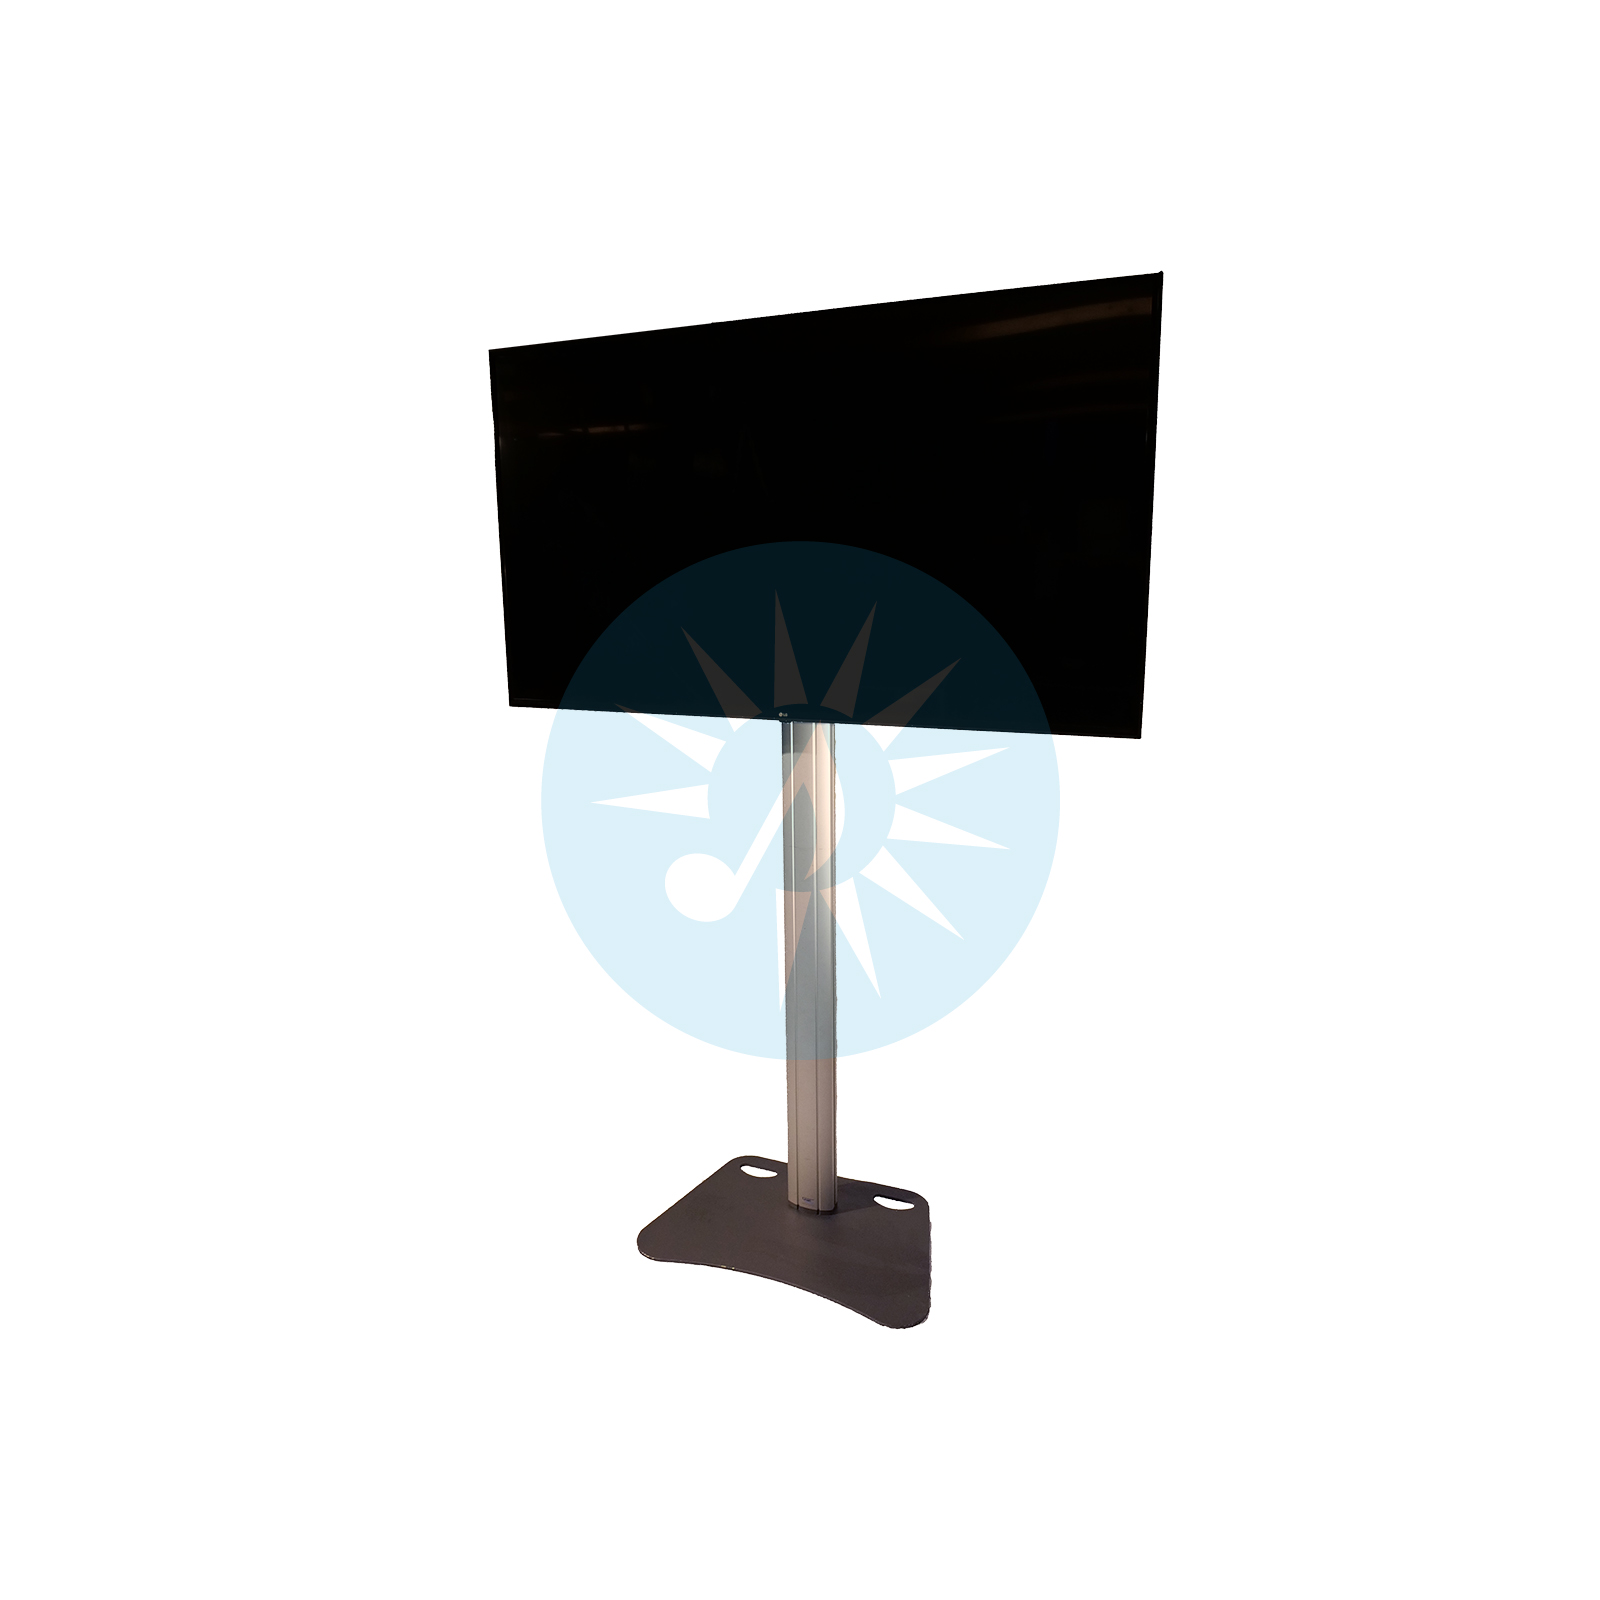 LED_Tv_scherm65_01